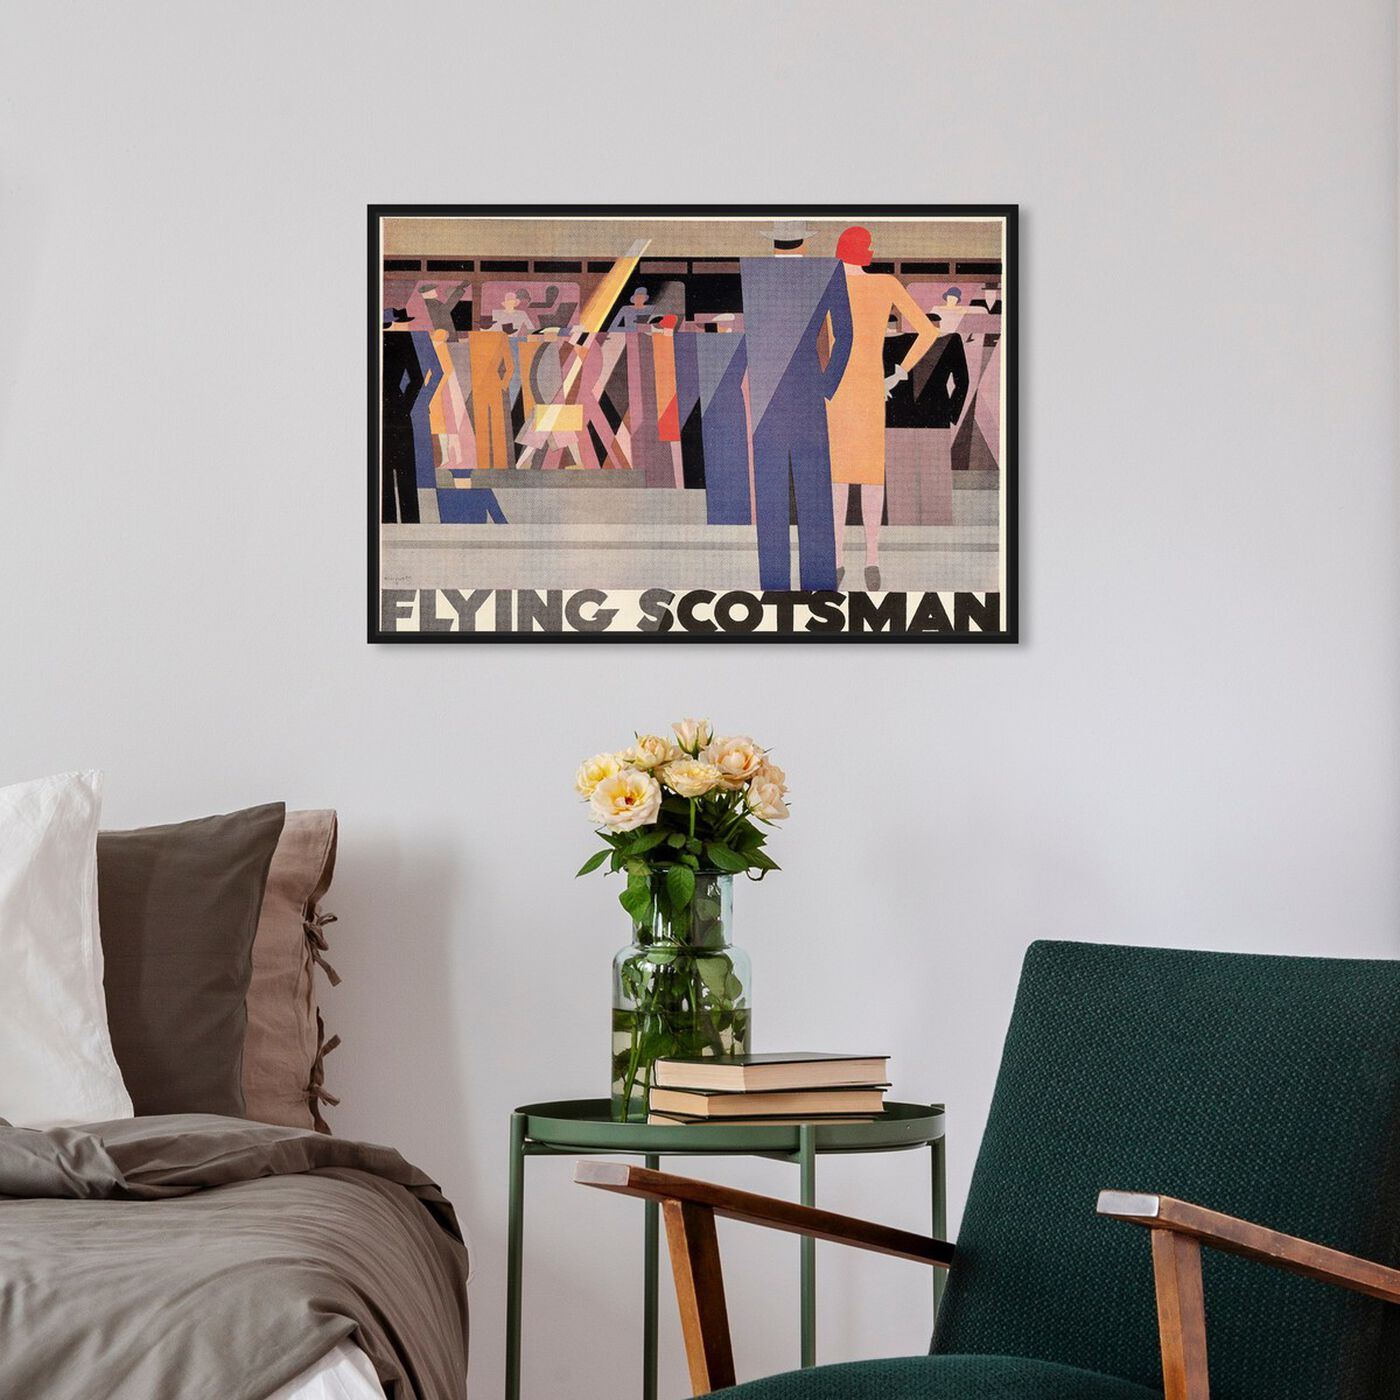 Hanging view of Flying Scotsman featuring advertising and posters art.